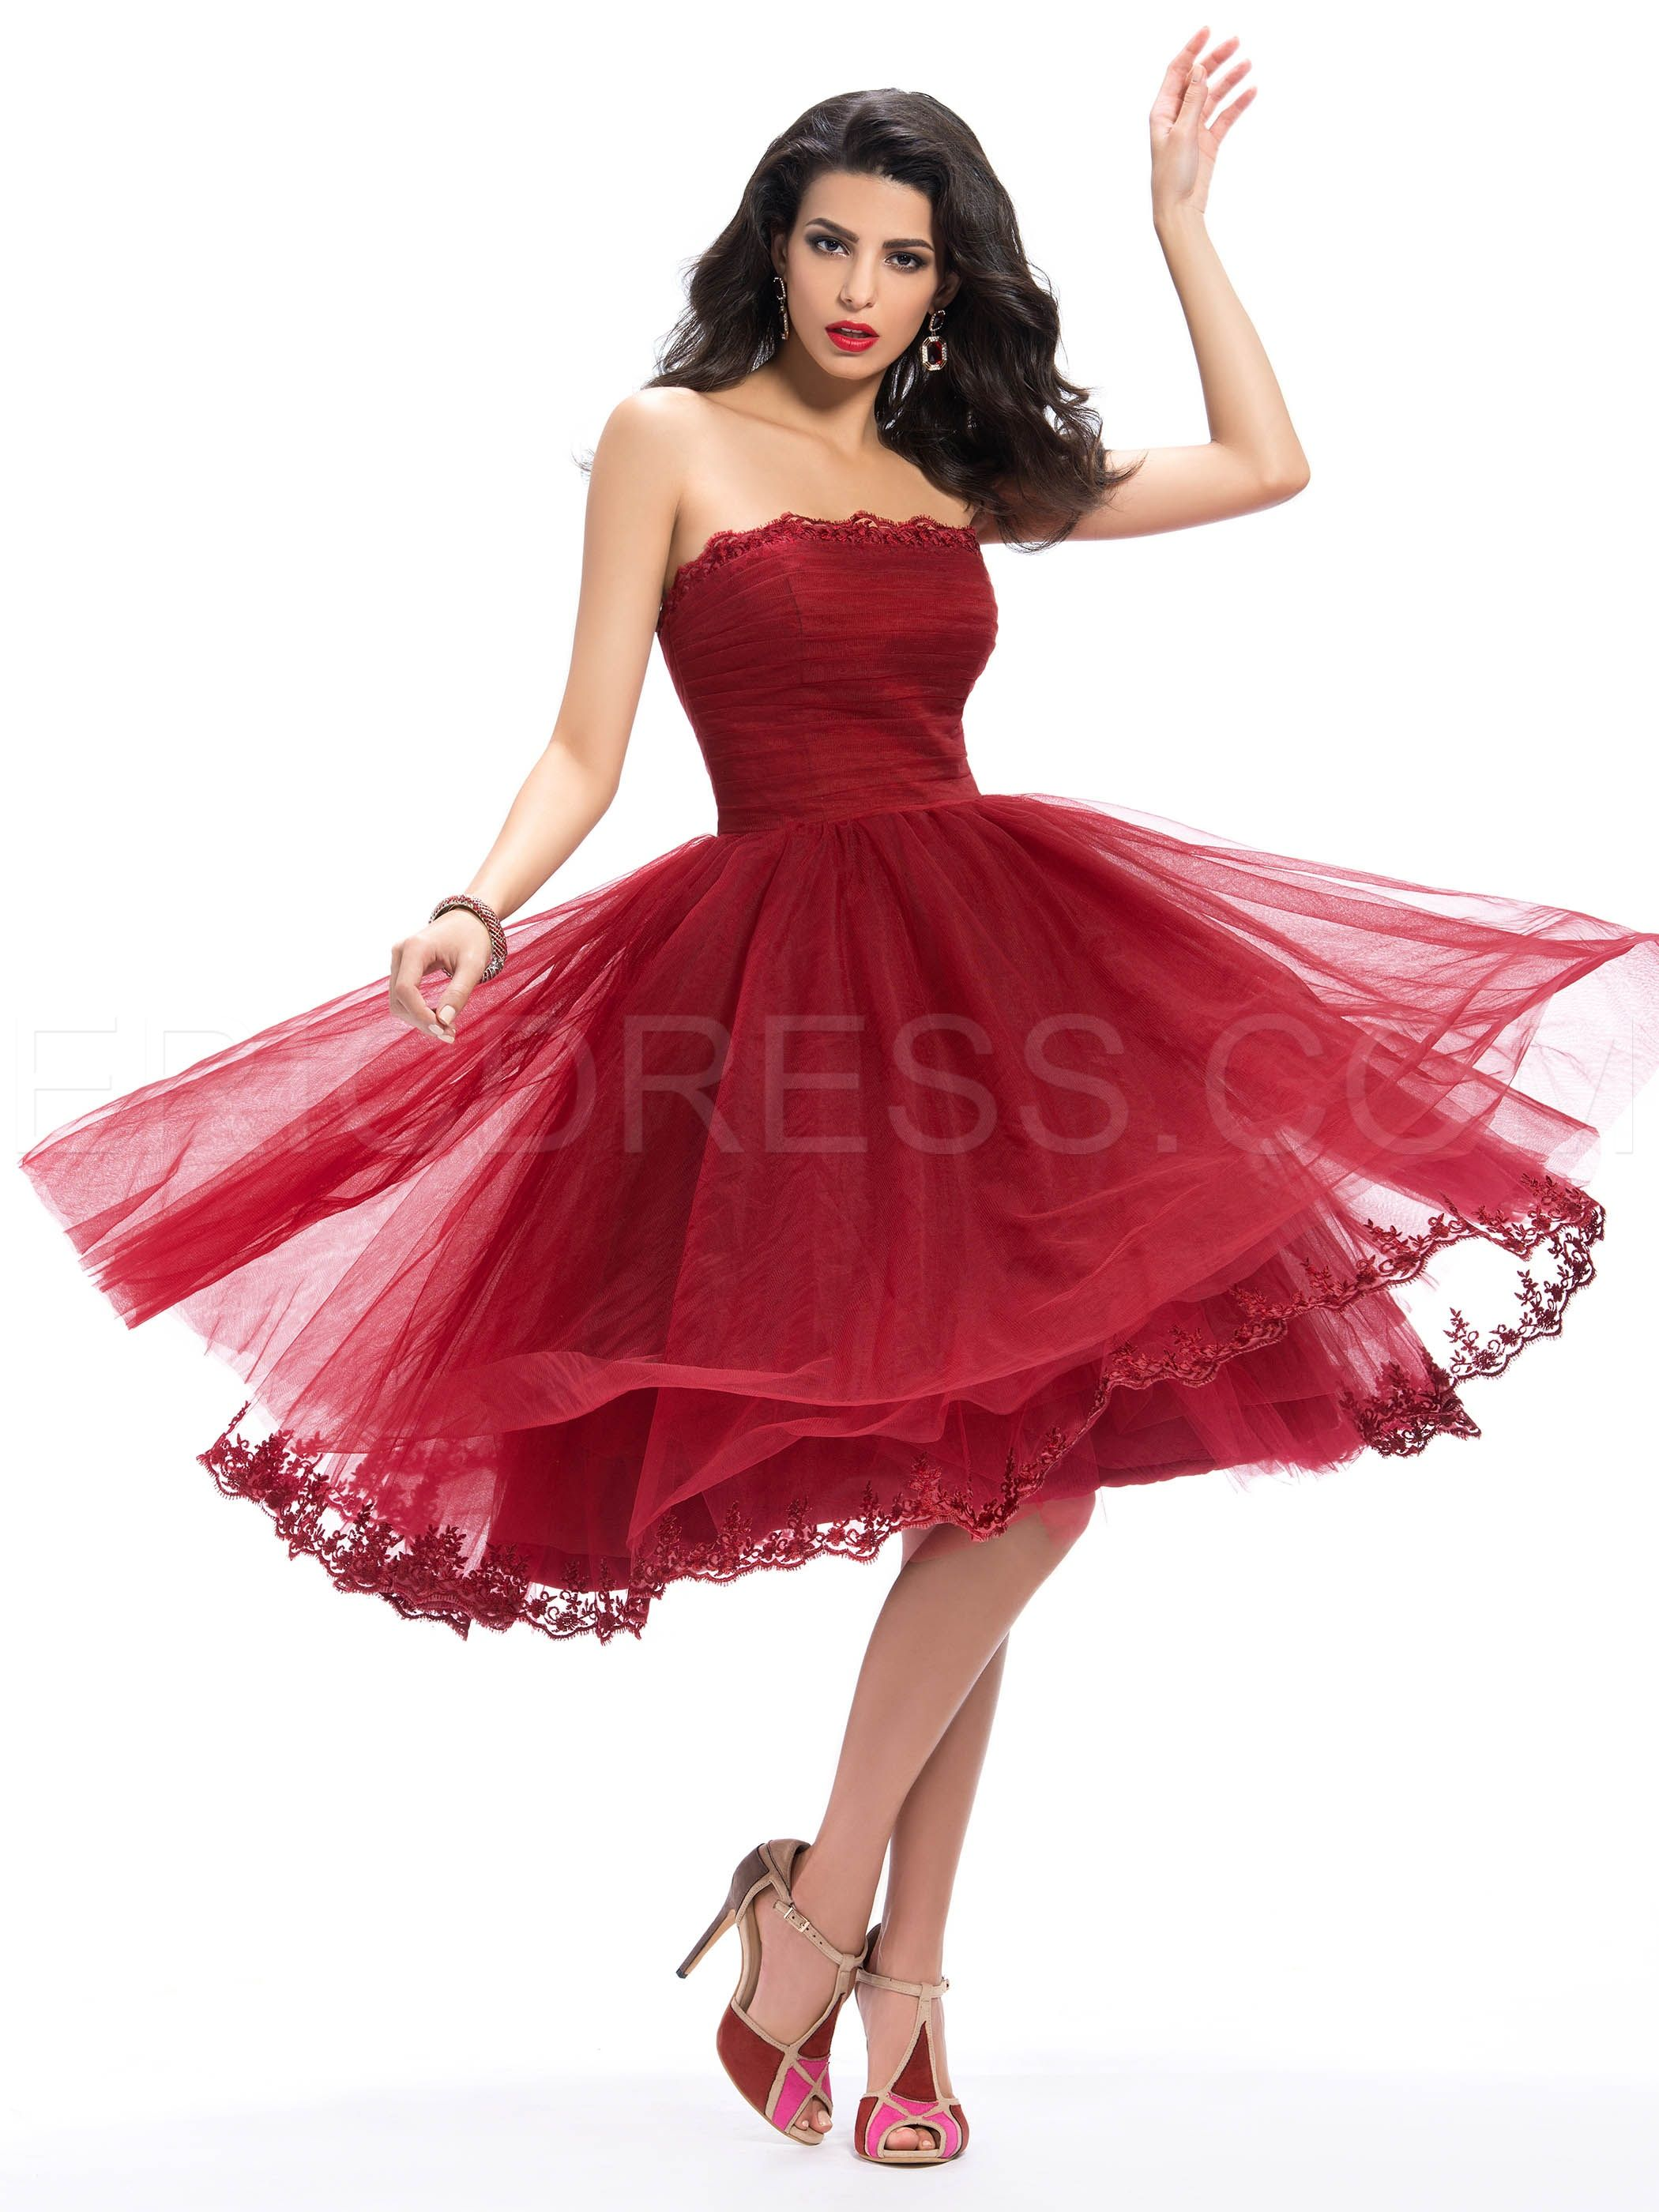 Glamour strapless appliques a line tea length homecoming dress glamour strapless appliques a line tea length homecoming dress ombrellifo Choice Image